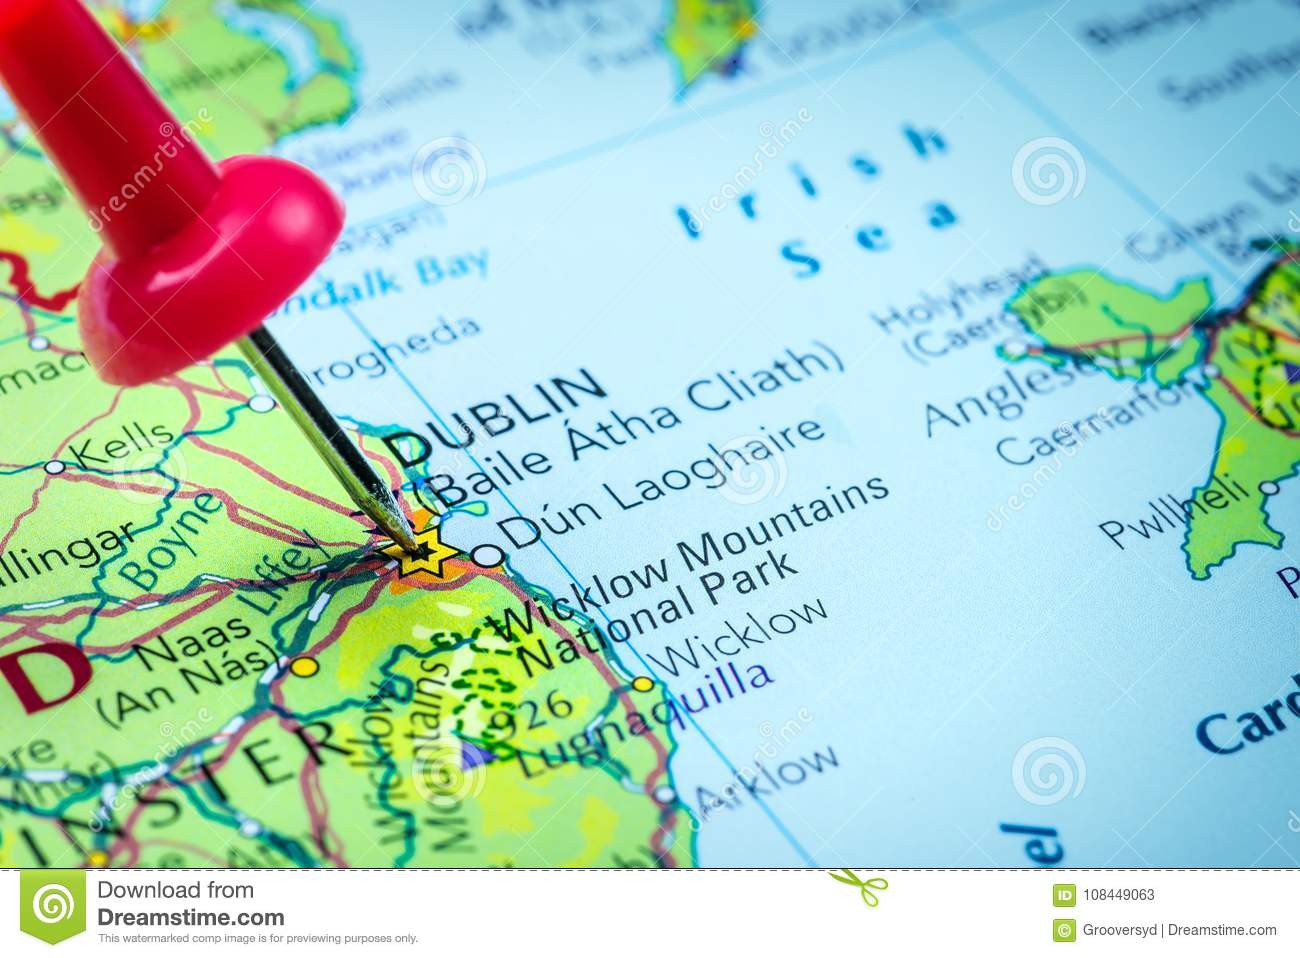 Ireland On Map Of Europe.Dublin In Ireland Pinned On A Map Stock Image Image Of Physical